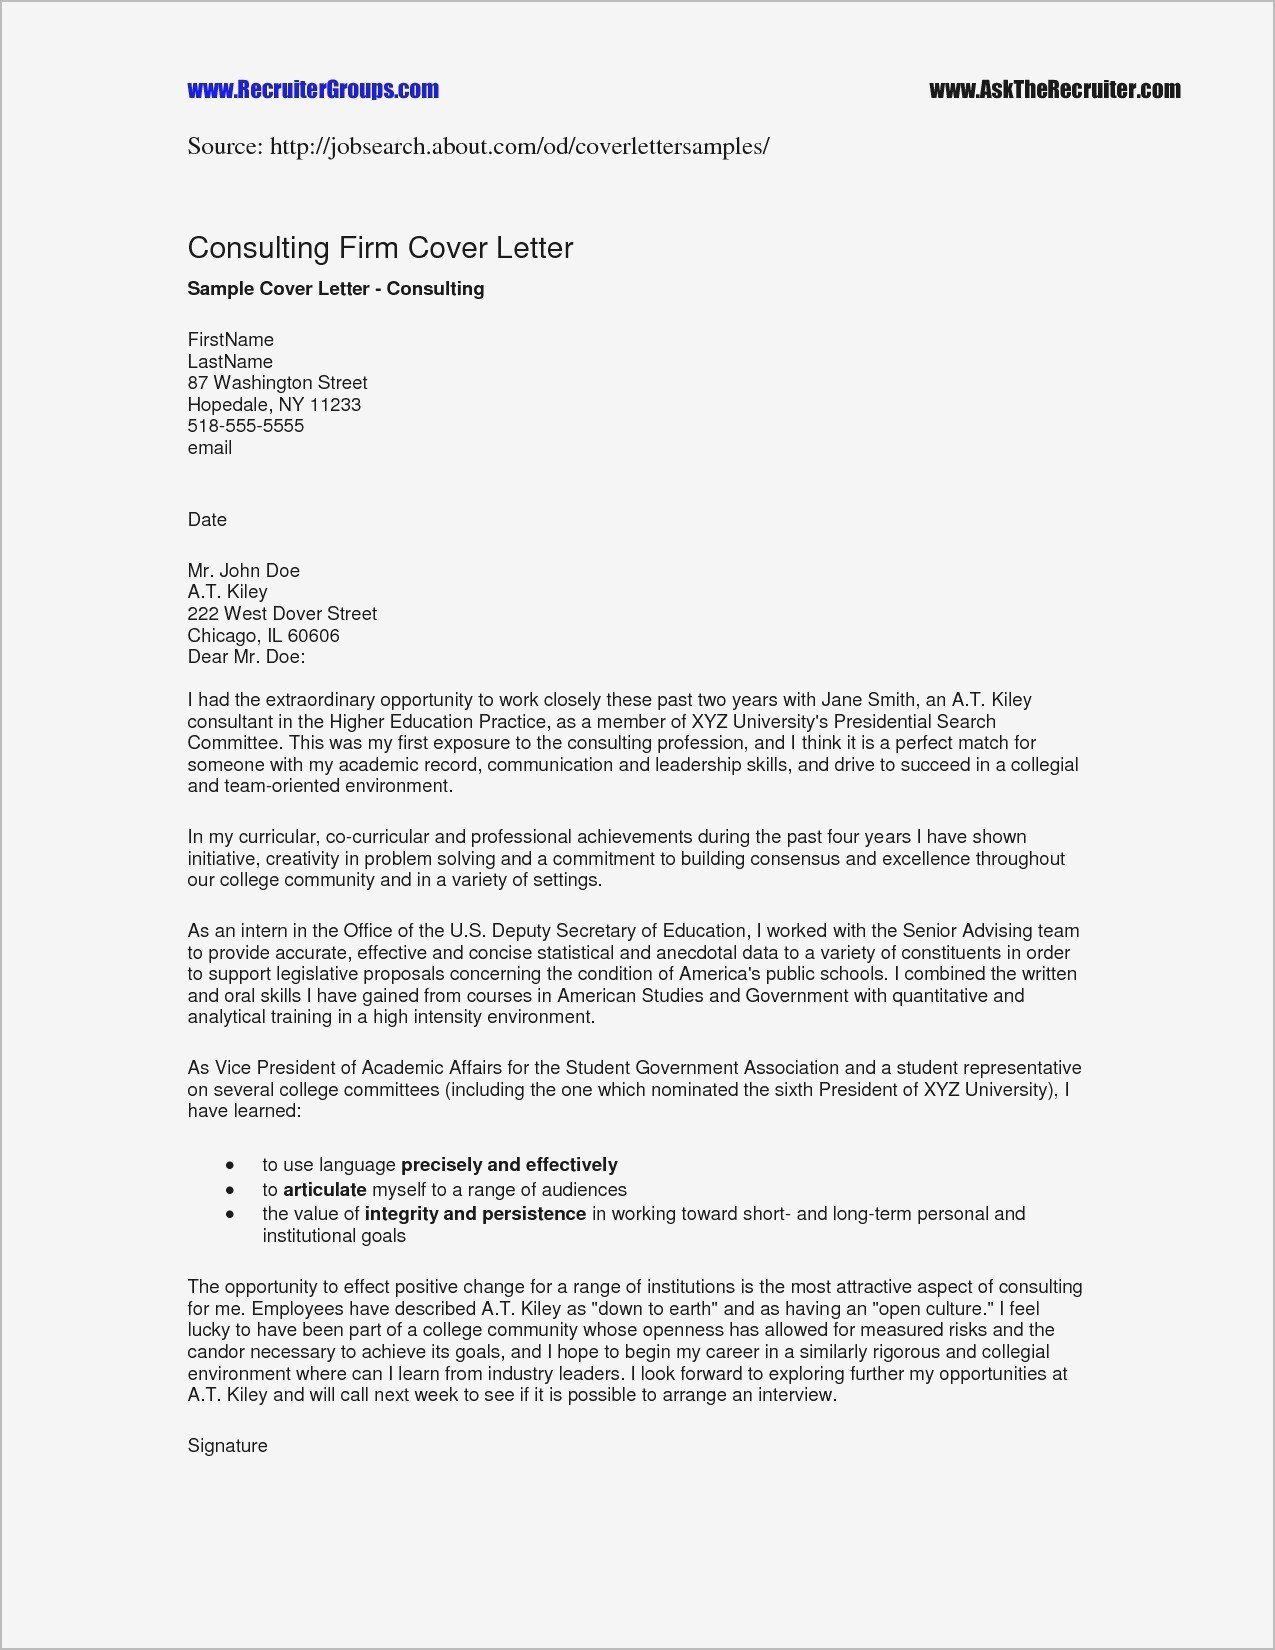 Welcome Letter to New Board Member Template - Microsoft Business Letter Template Save Templates for Business